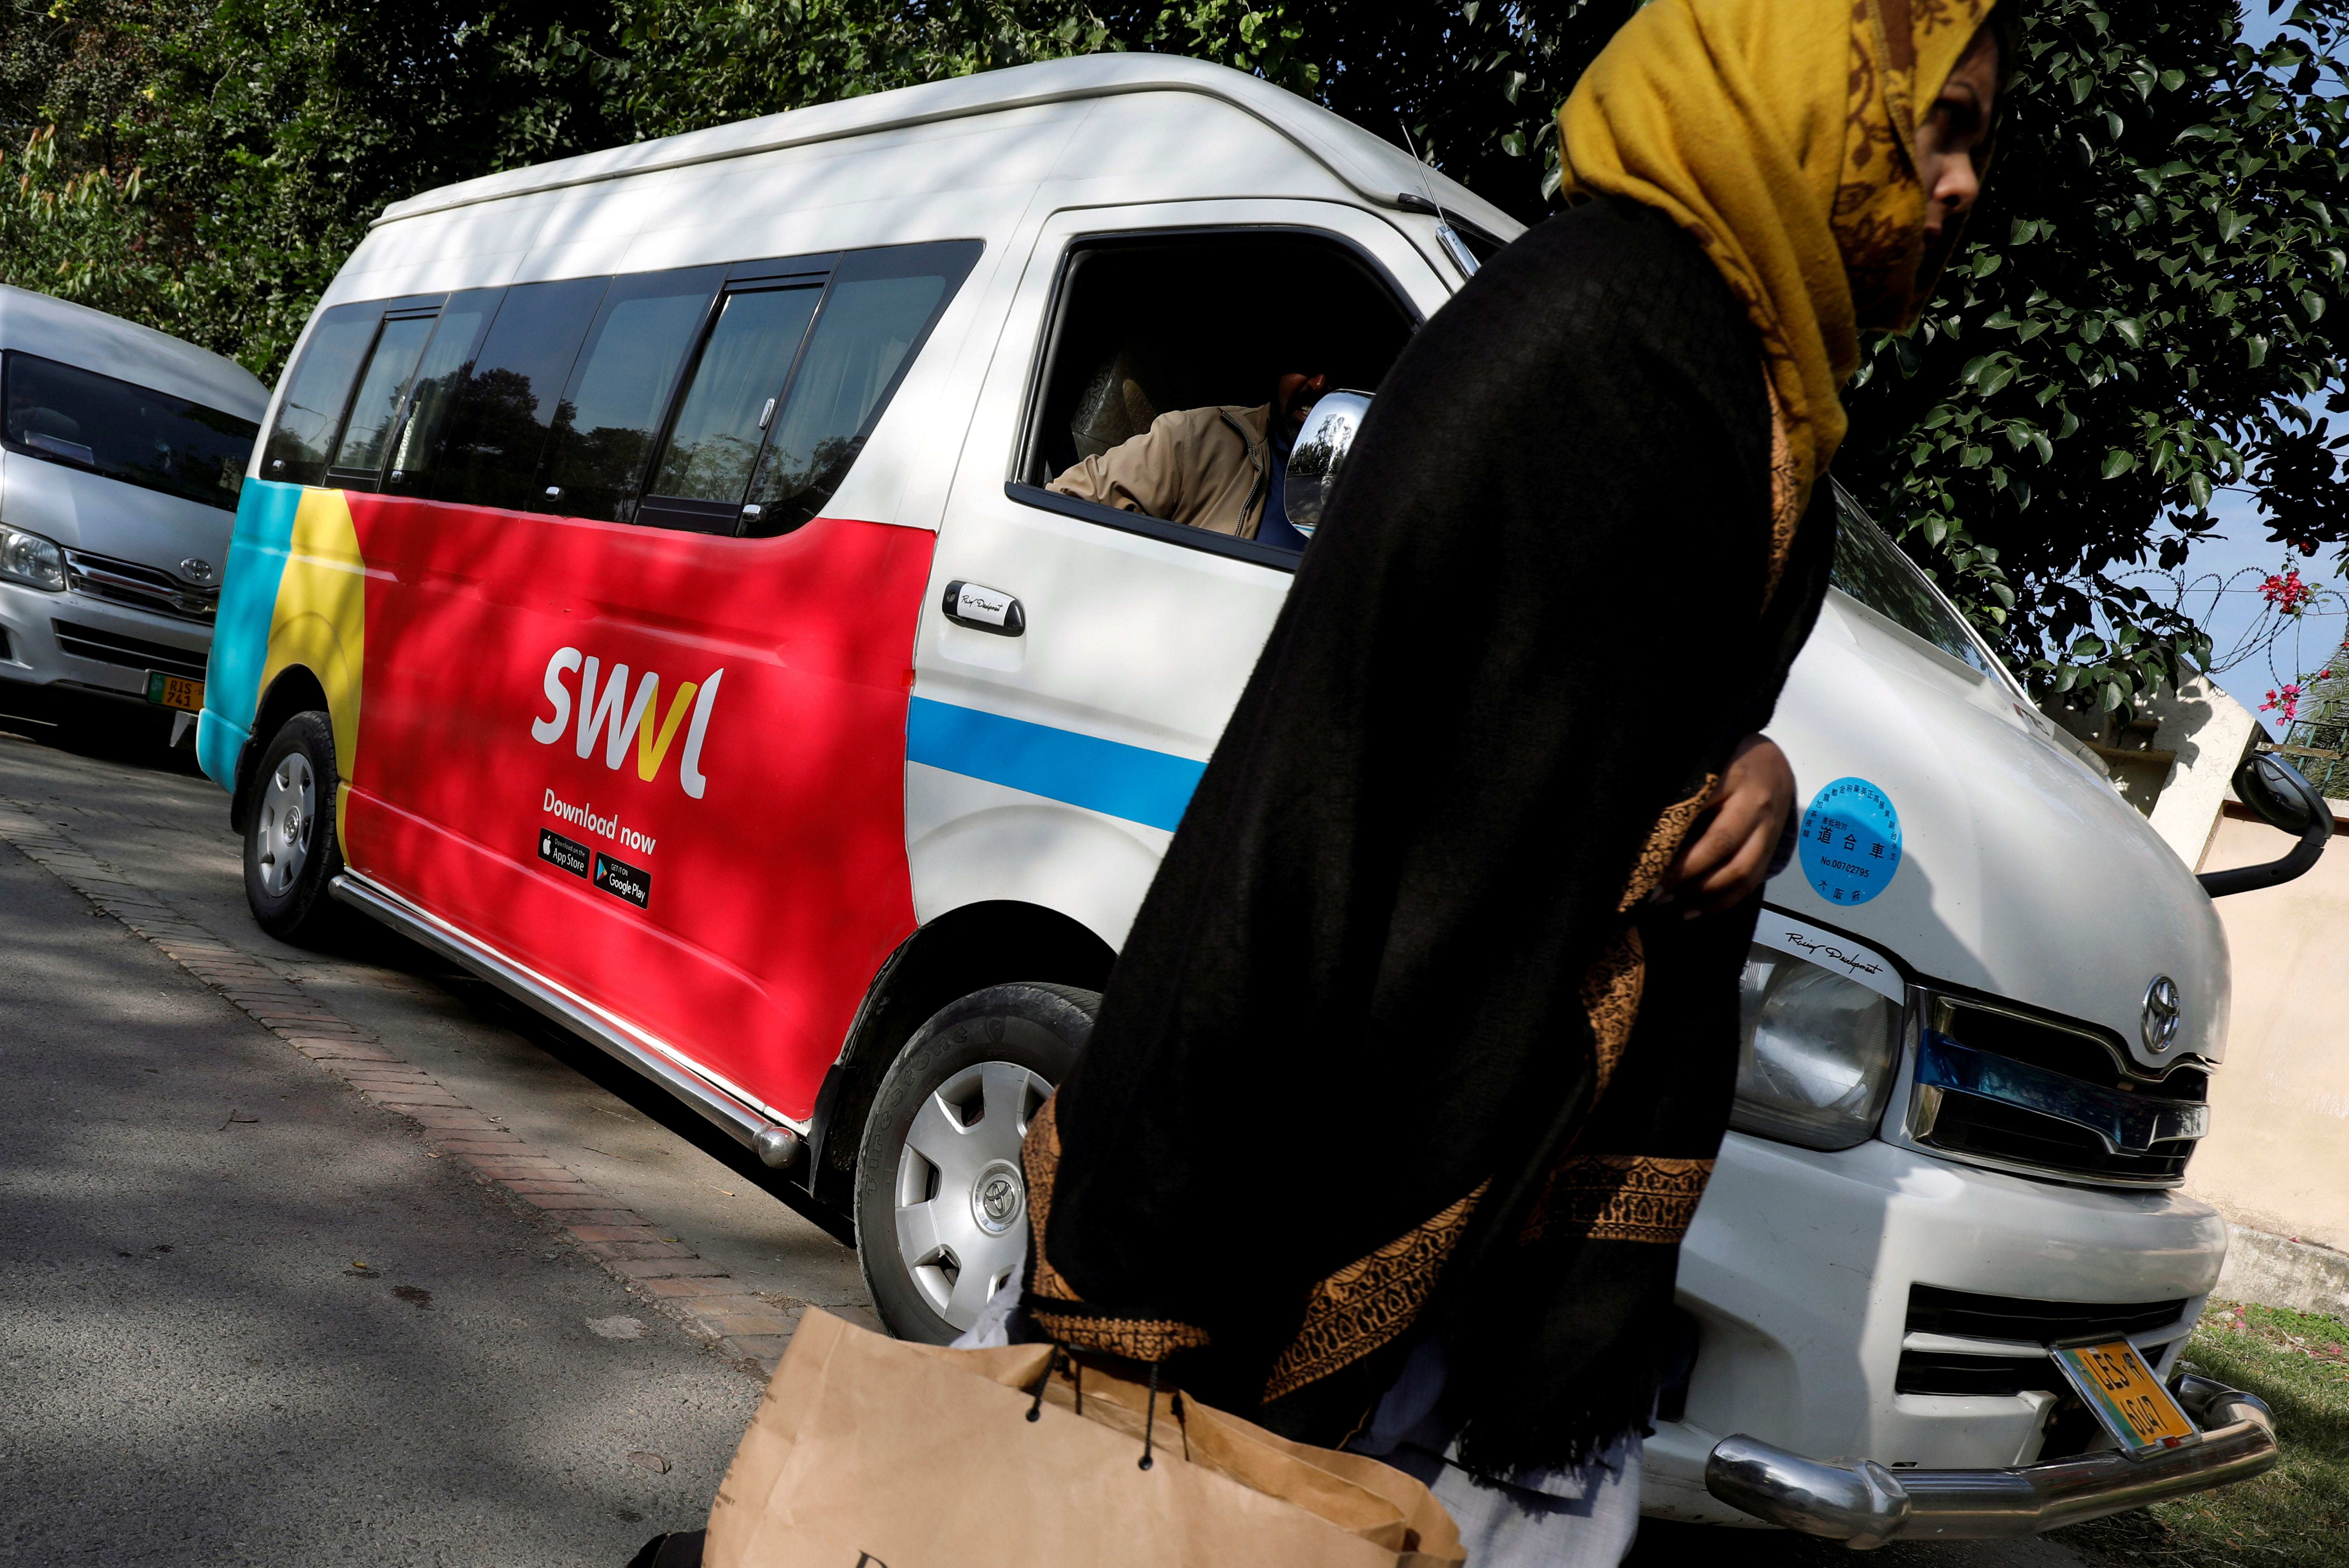 The logo of the Egyptian transport technology start-up Swvl in Islamabad, Pakistan, November 11, 2019. REUTERS/Akhtar Soomro/File Photo